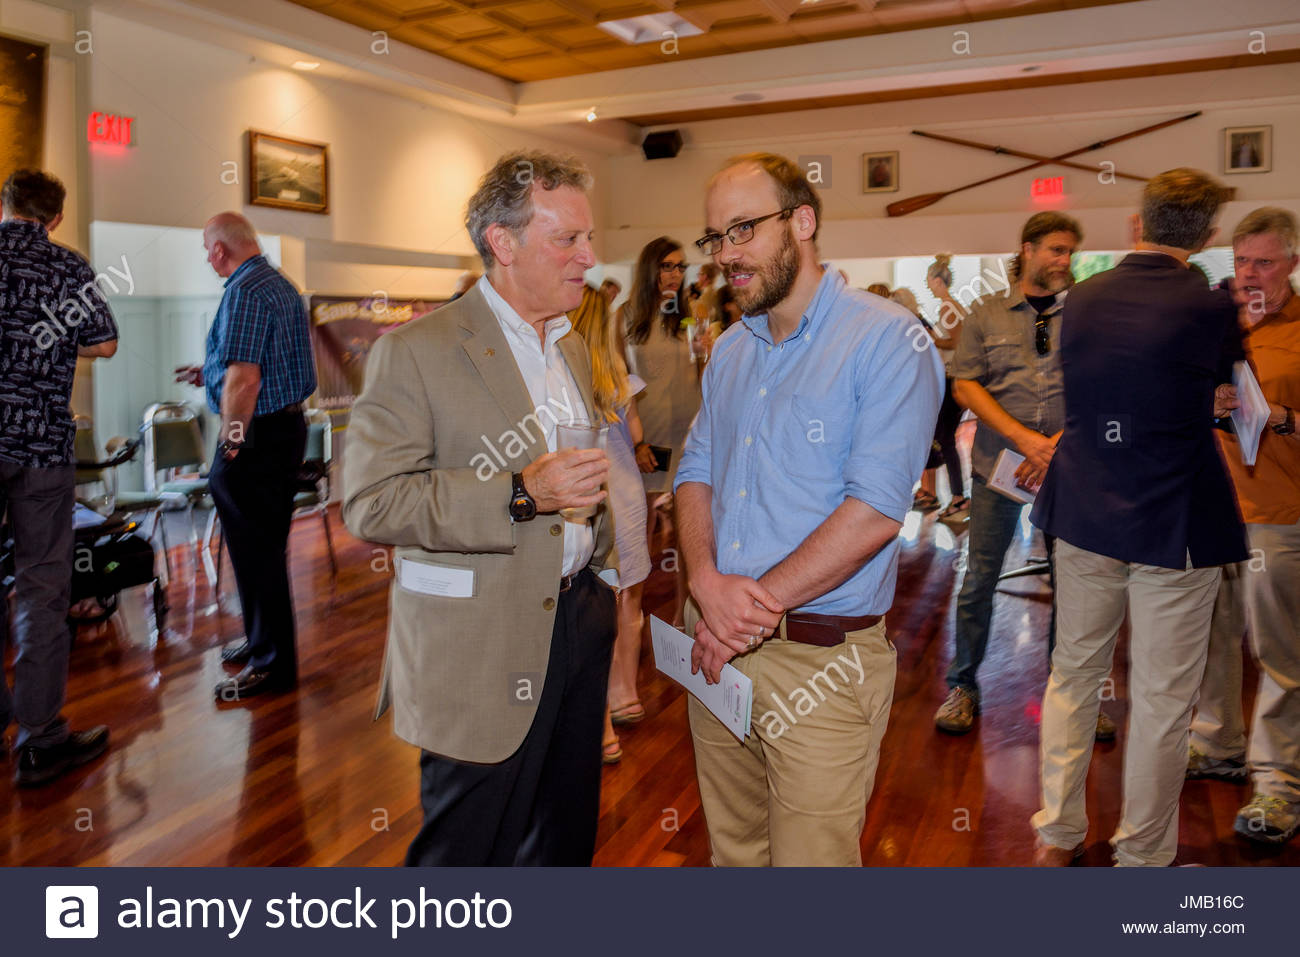 Vancouver, Canada. 26th July, 2017. British Columbia's Environment Minister, George Heyman, attends the Celebration of Life for revered environmentalist and Wilderness Committee Director Gwen Barlee who passed away on June 21, 2017. Credit: Michael Wheatley/Alamy Live News - Stock Image